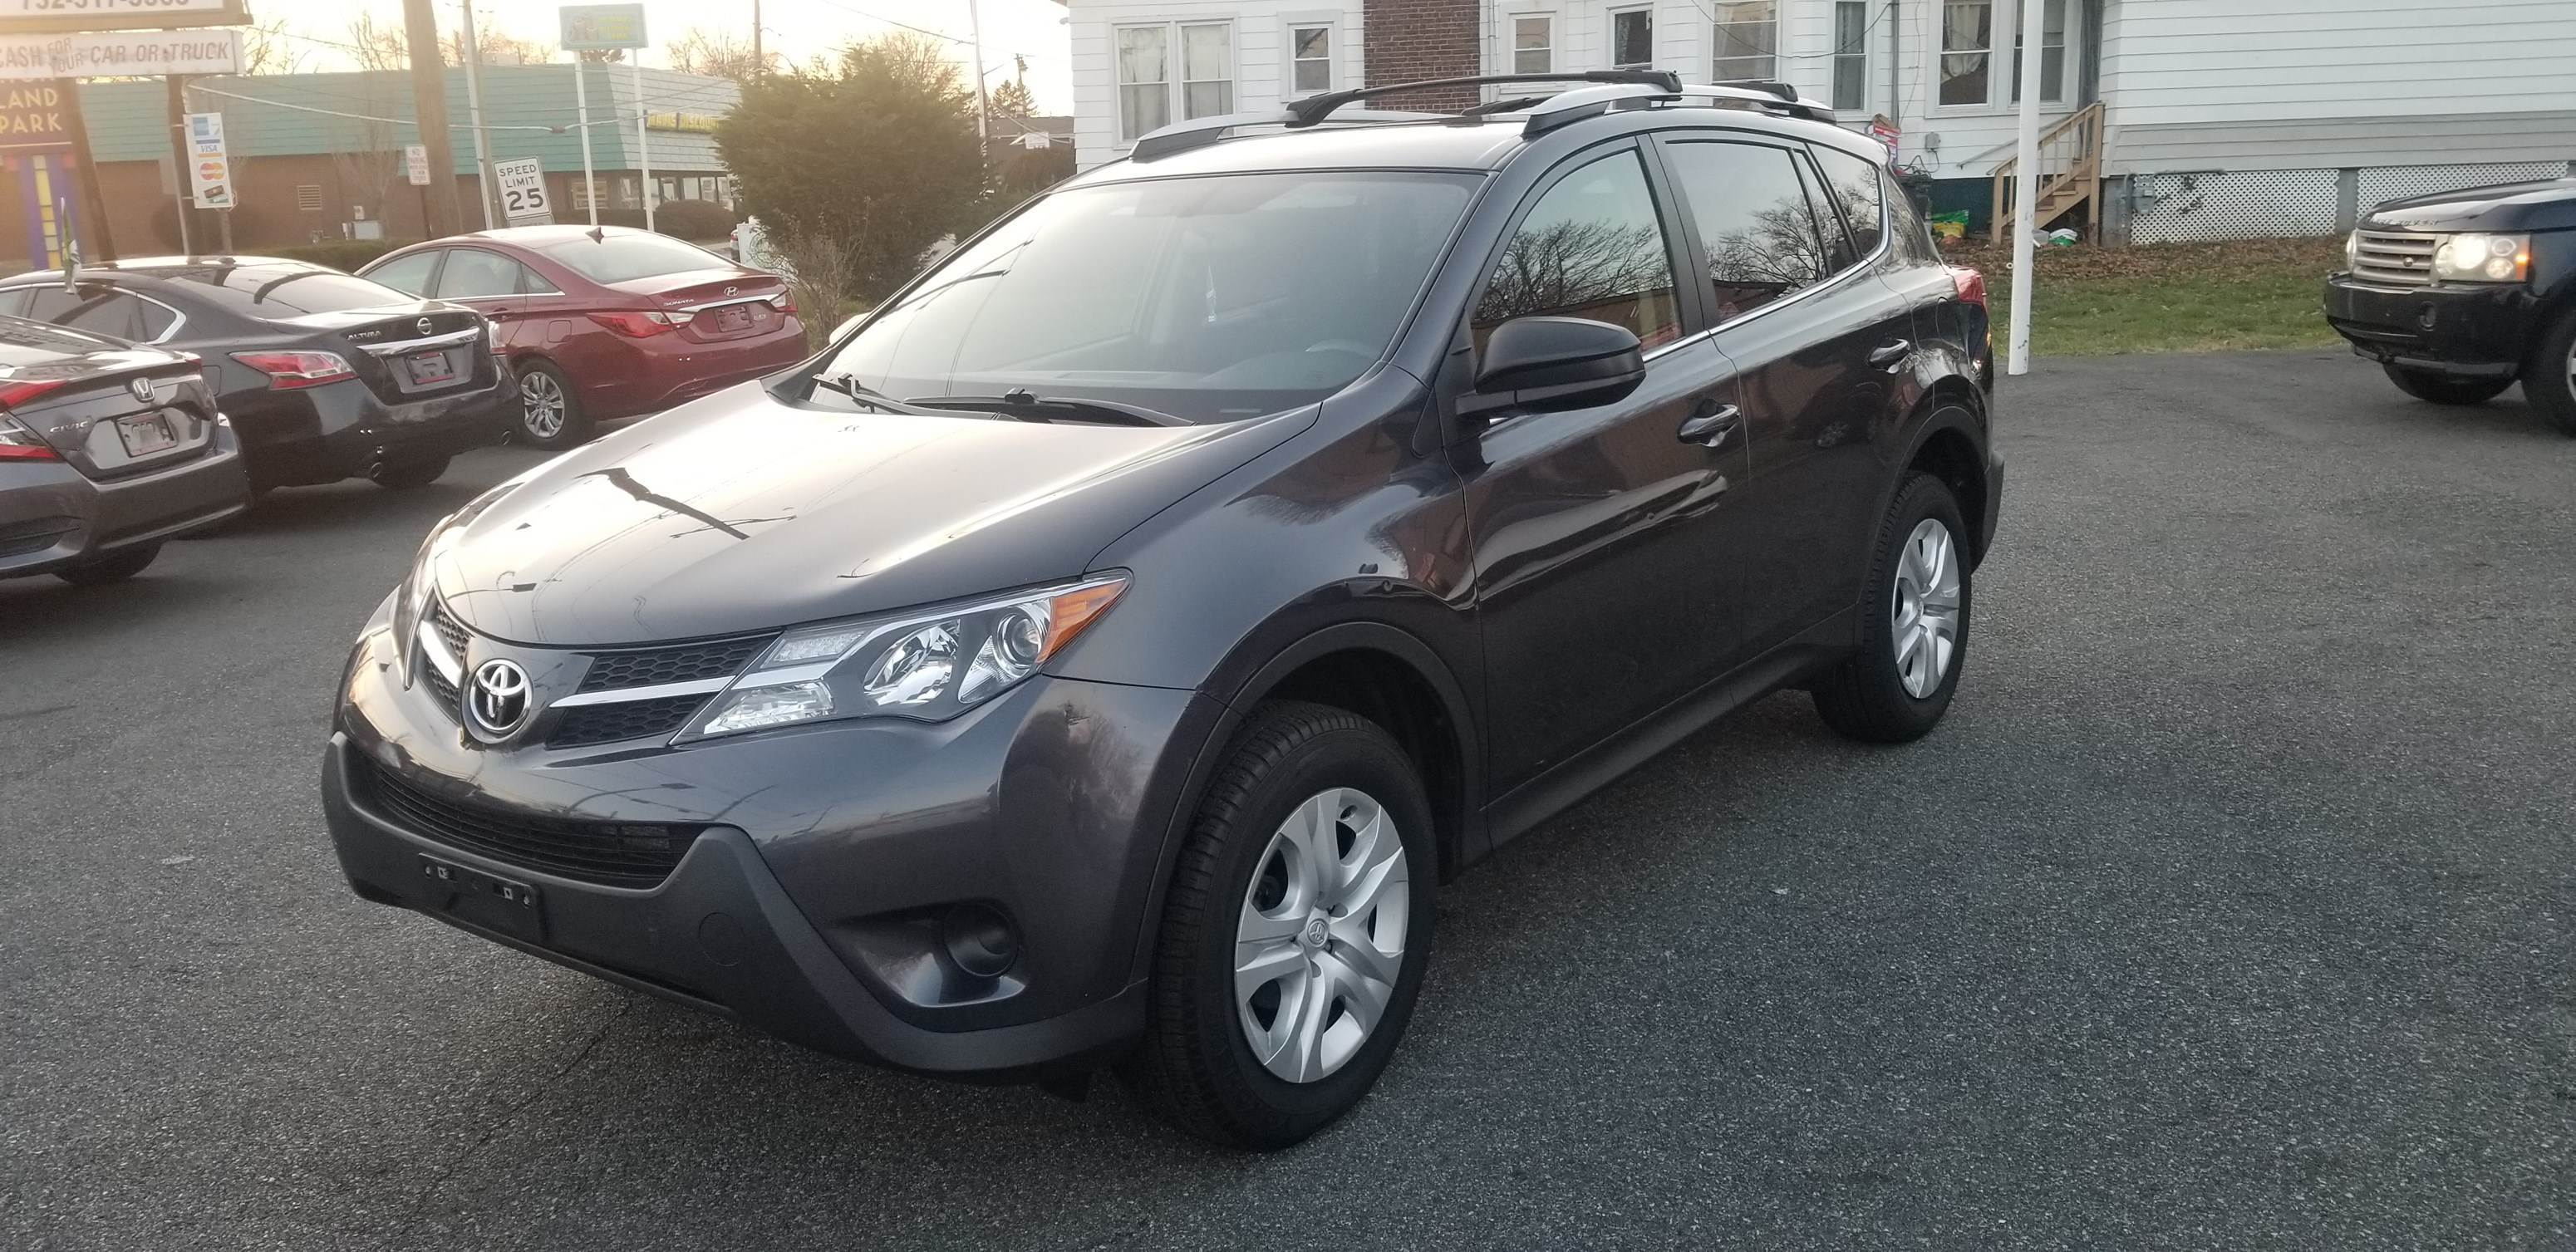 2015 toyota rav4 le awd 2 5l 4 cylinder clean carfax 1 owner under toyota warranty only 14k miles back up camera